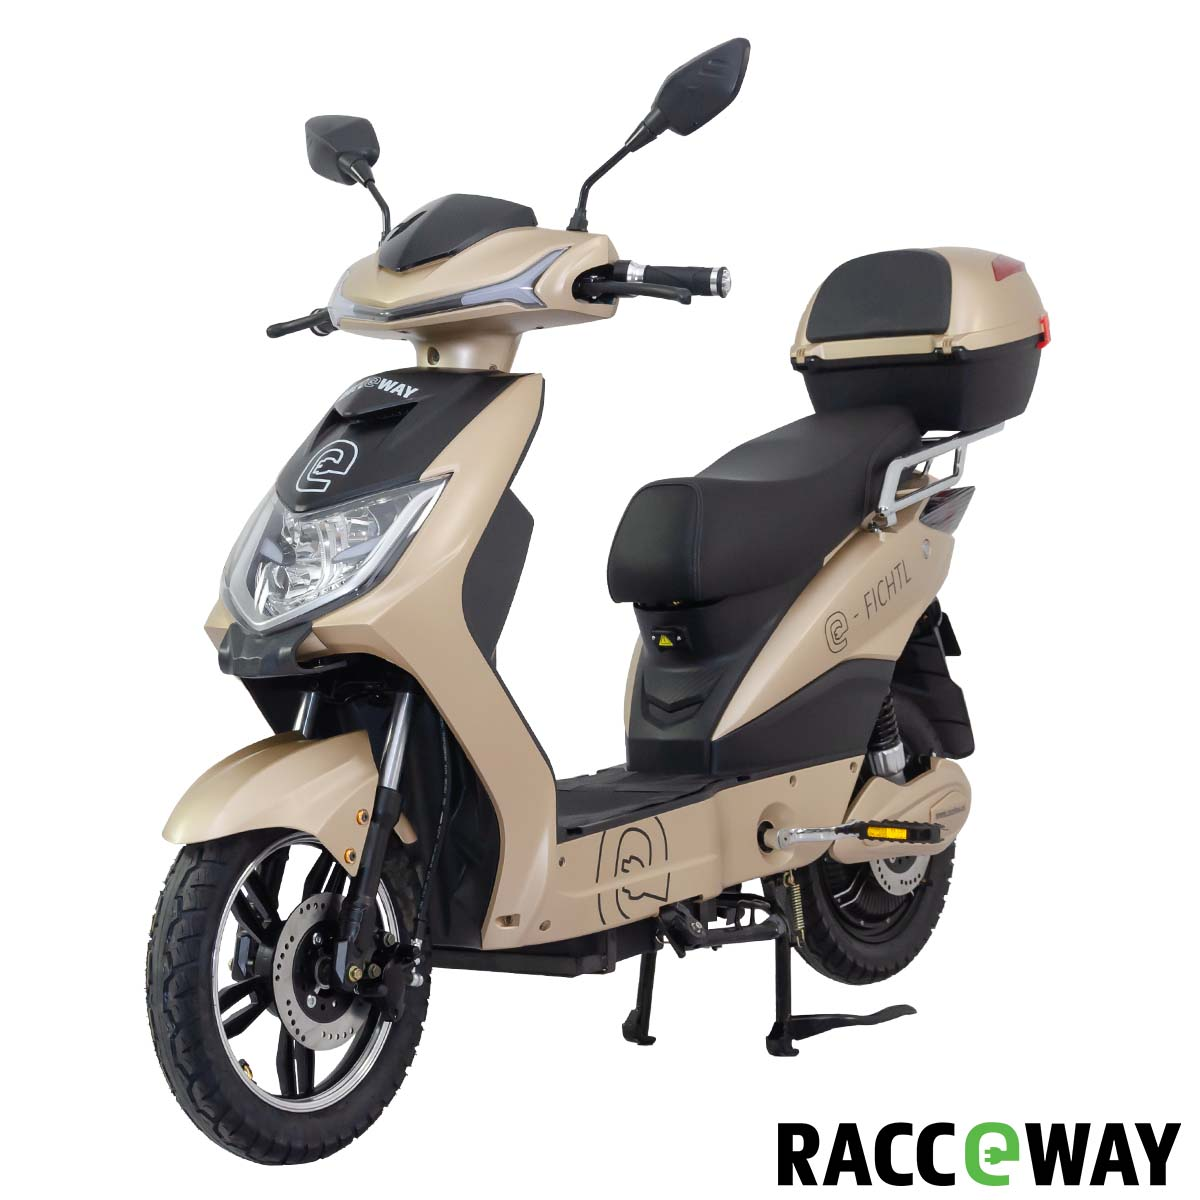 https://www.racceway.cz/inshop/catalogue/products/pictures/motoe-1f-03_a2.jpg?timestamp=20210927082842